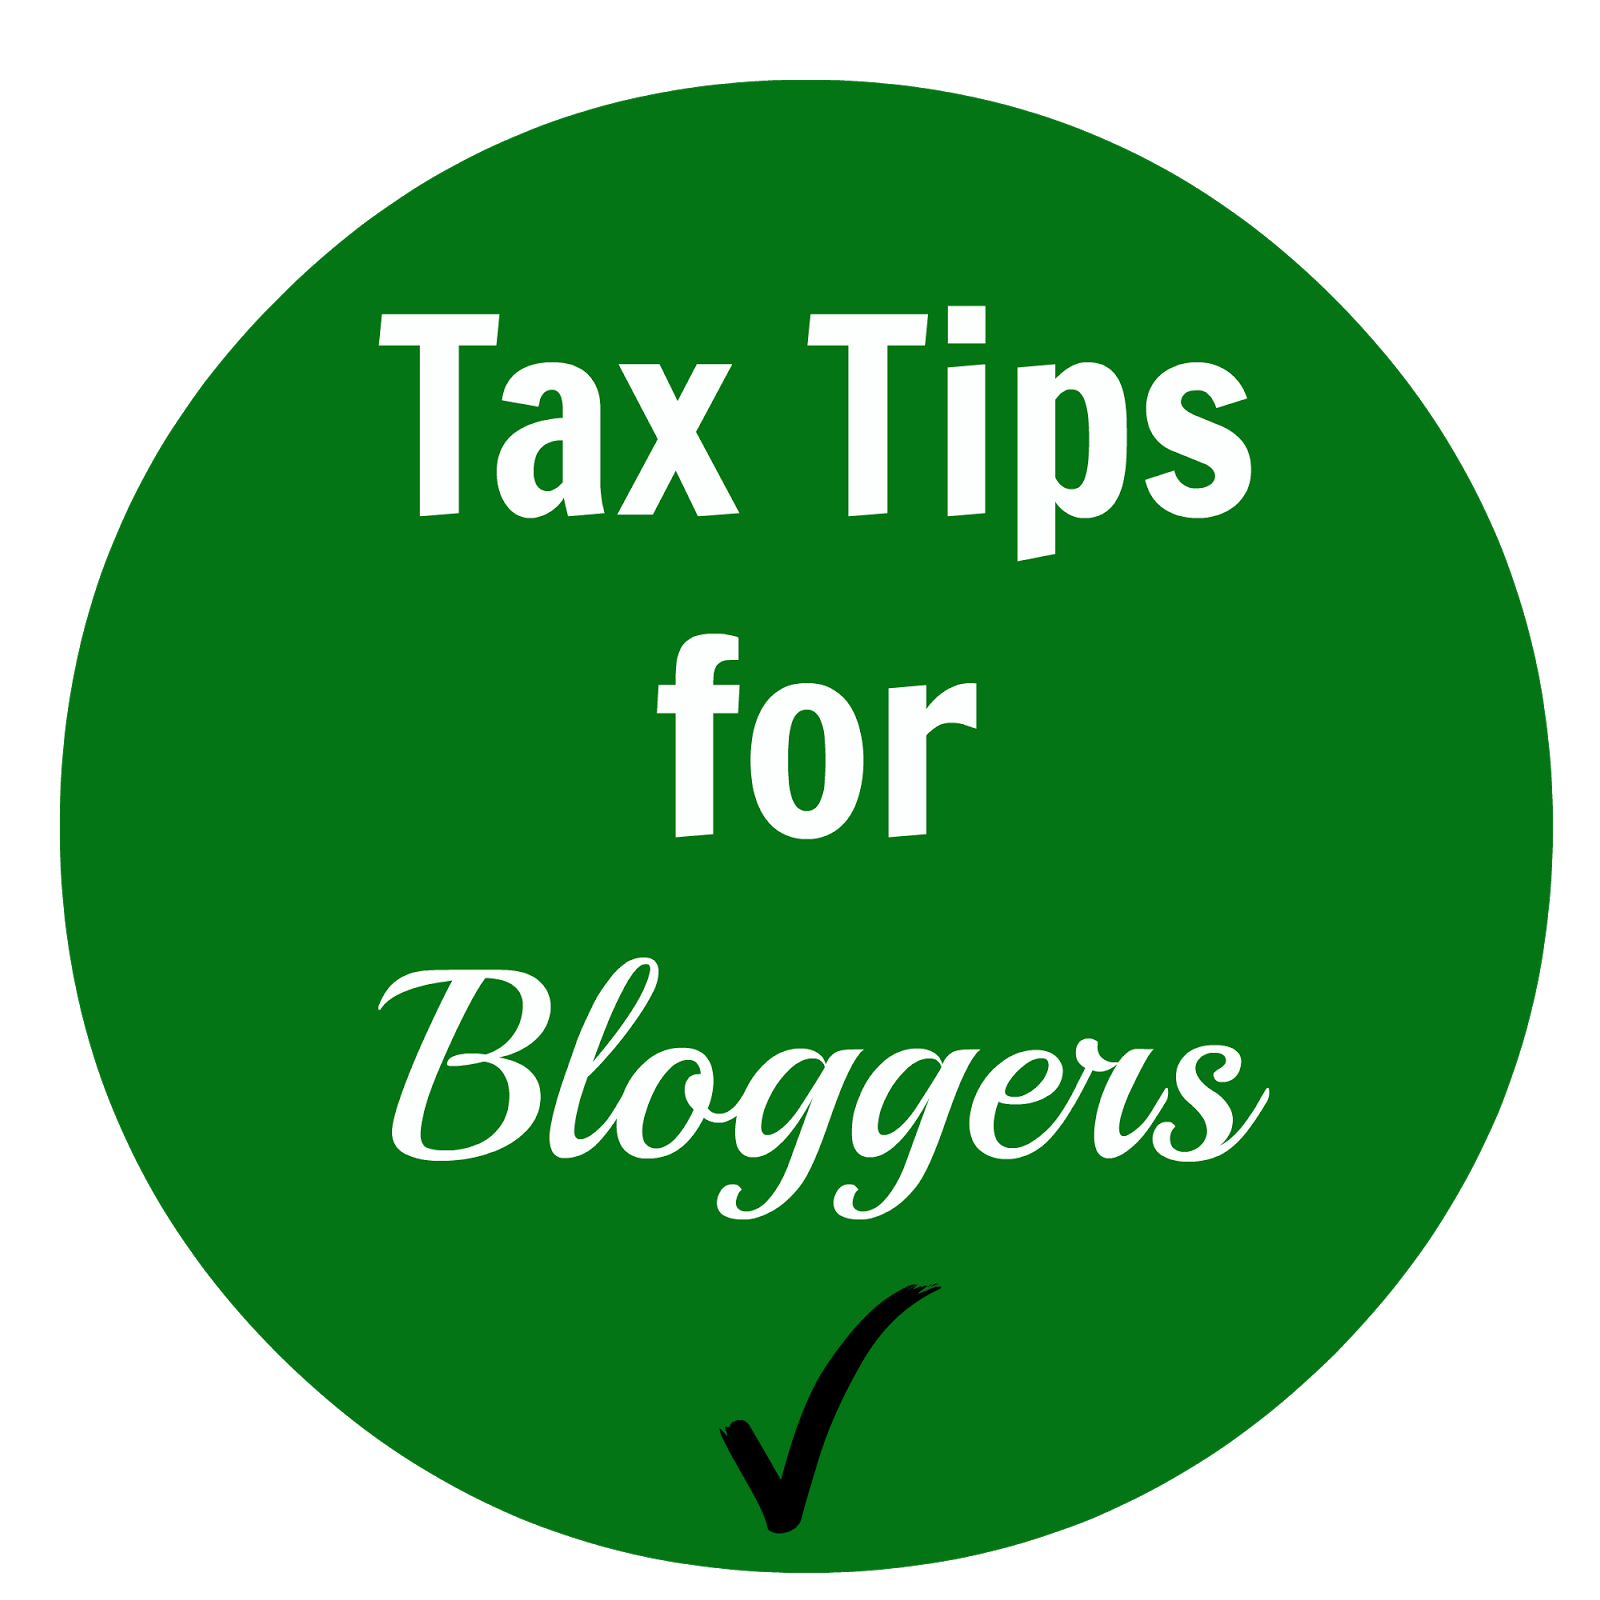 Tax Tips for Bloggers via www.productreviewmom.com